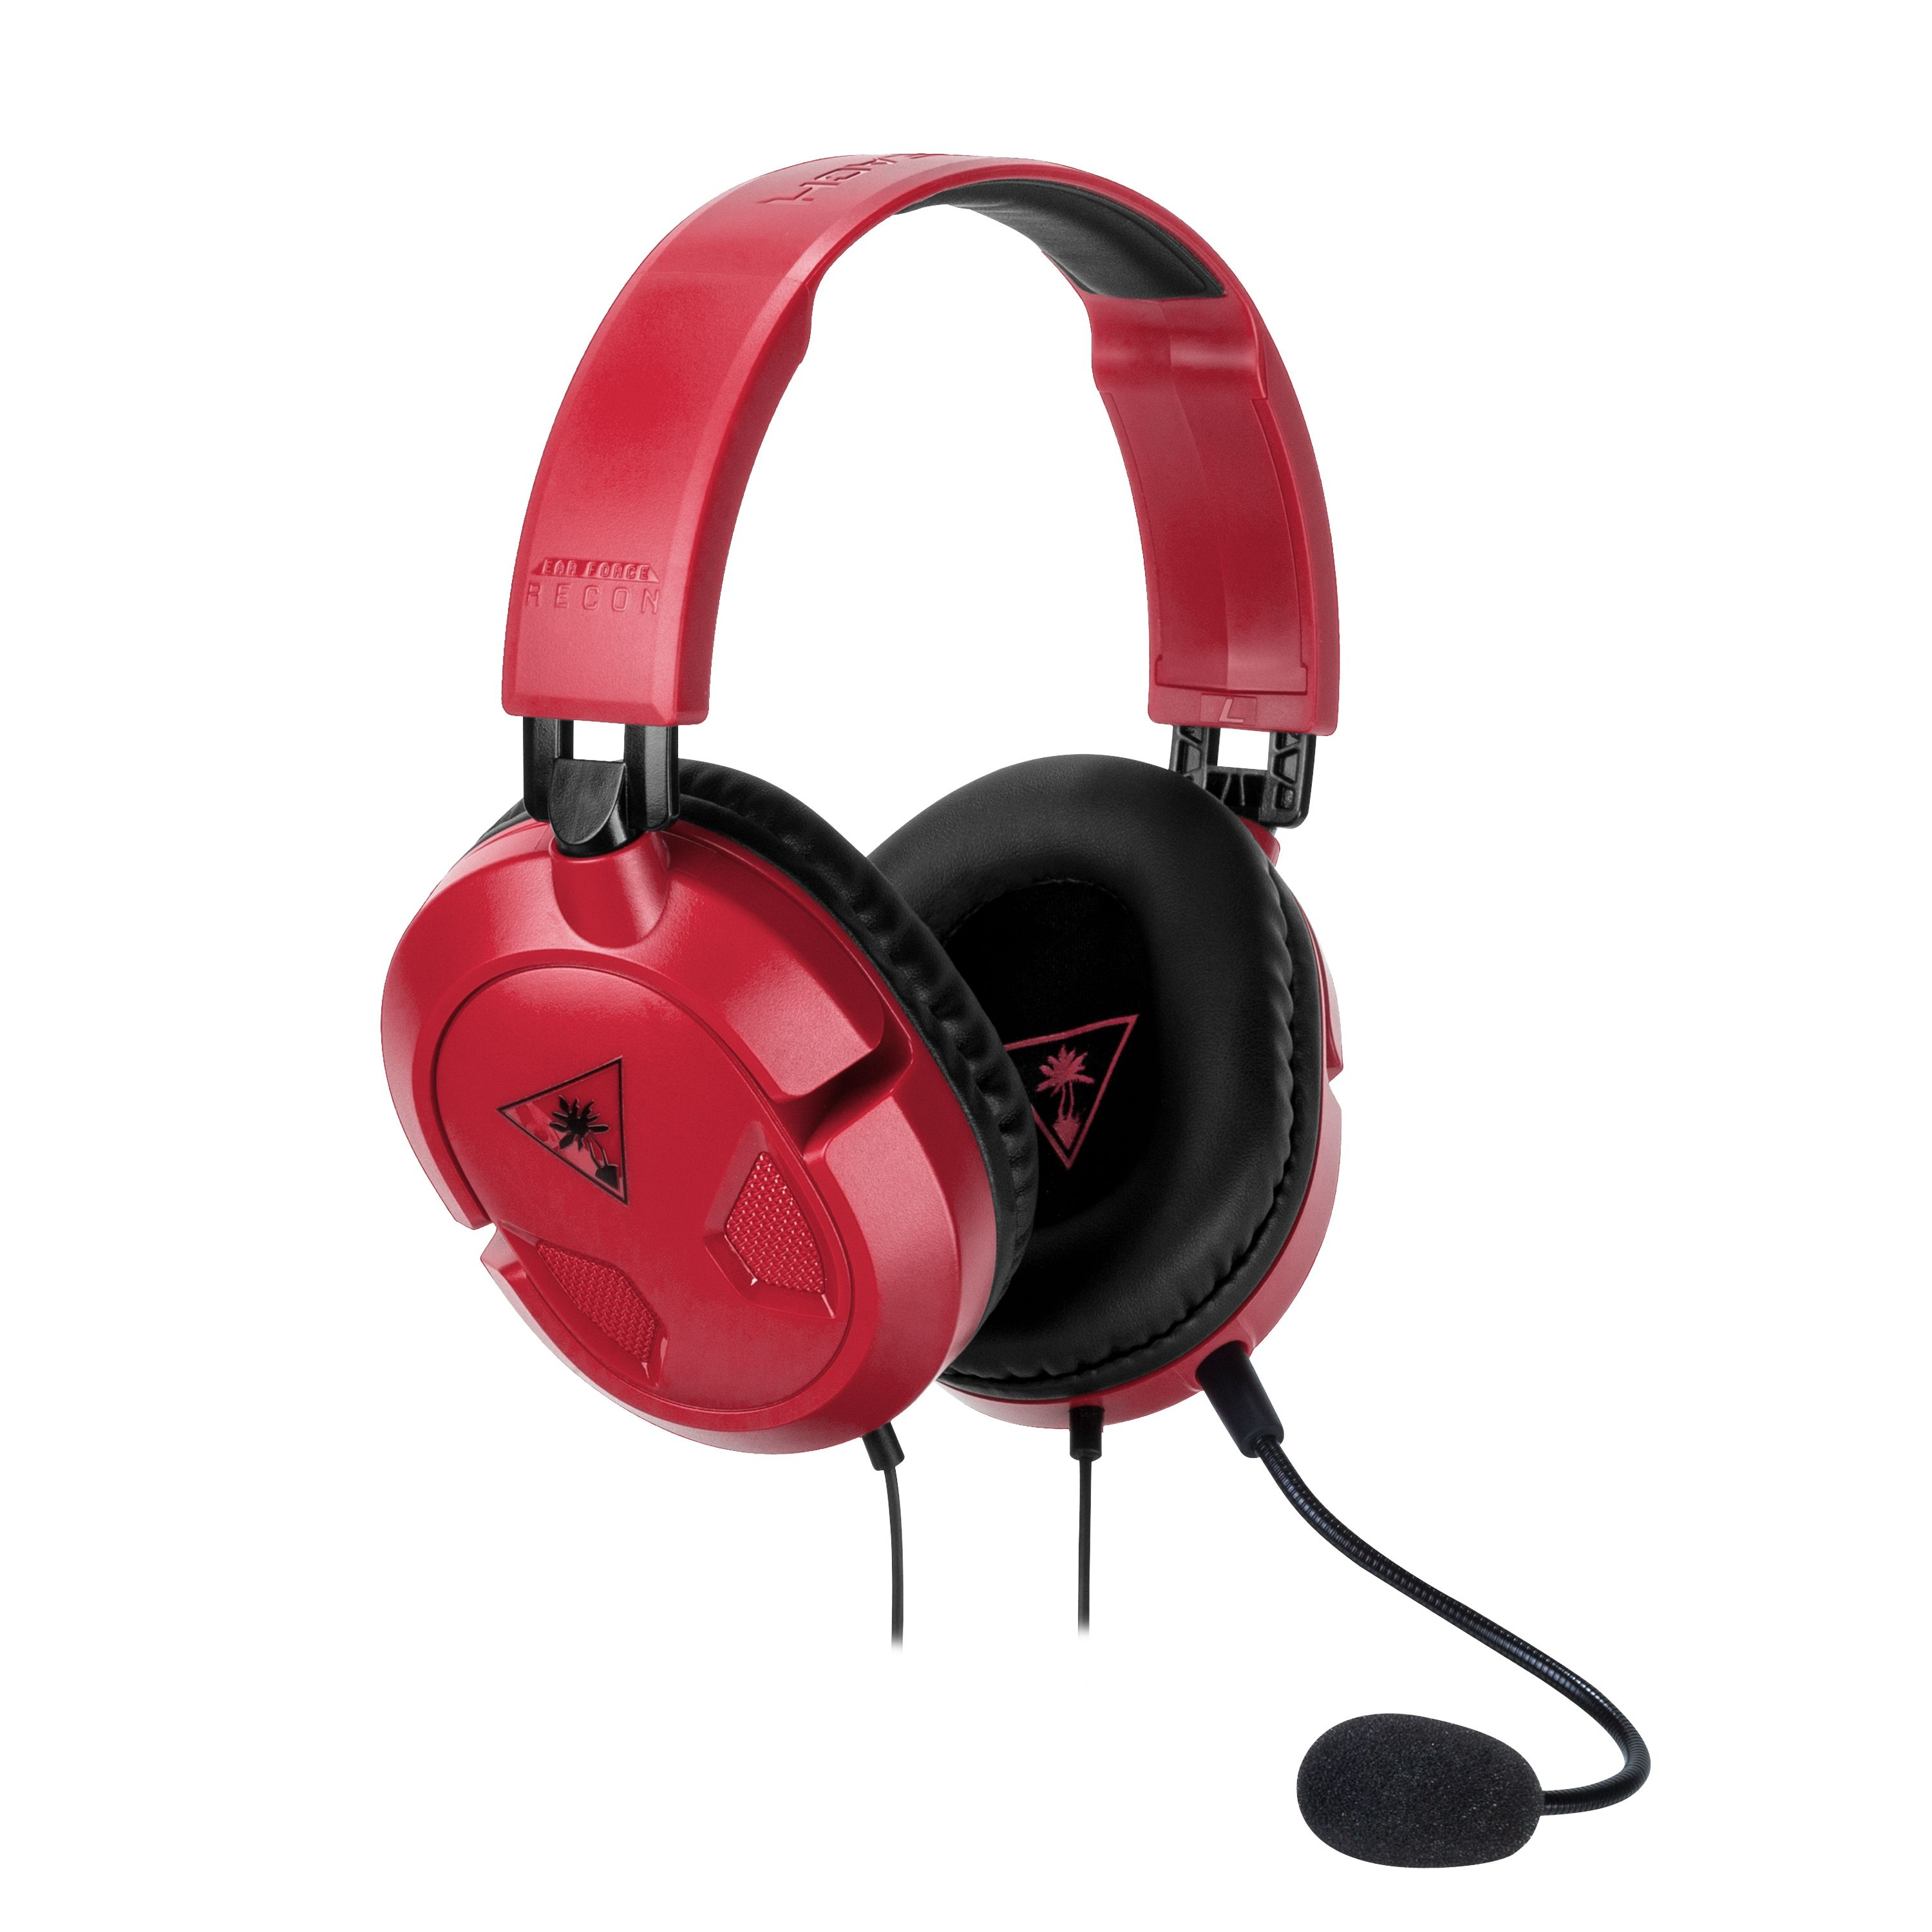 Turtle Beach Recon 50p Headset Red Walmart Exclusive Ps4 Xbox One Pc Mobile Headset Red Turtle Xbox One Pc